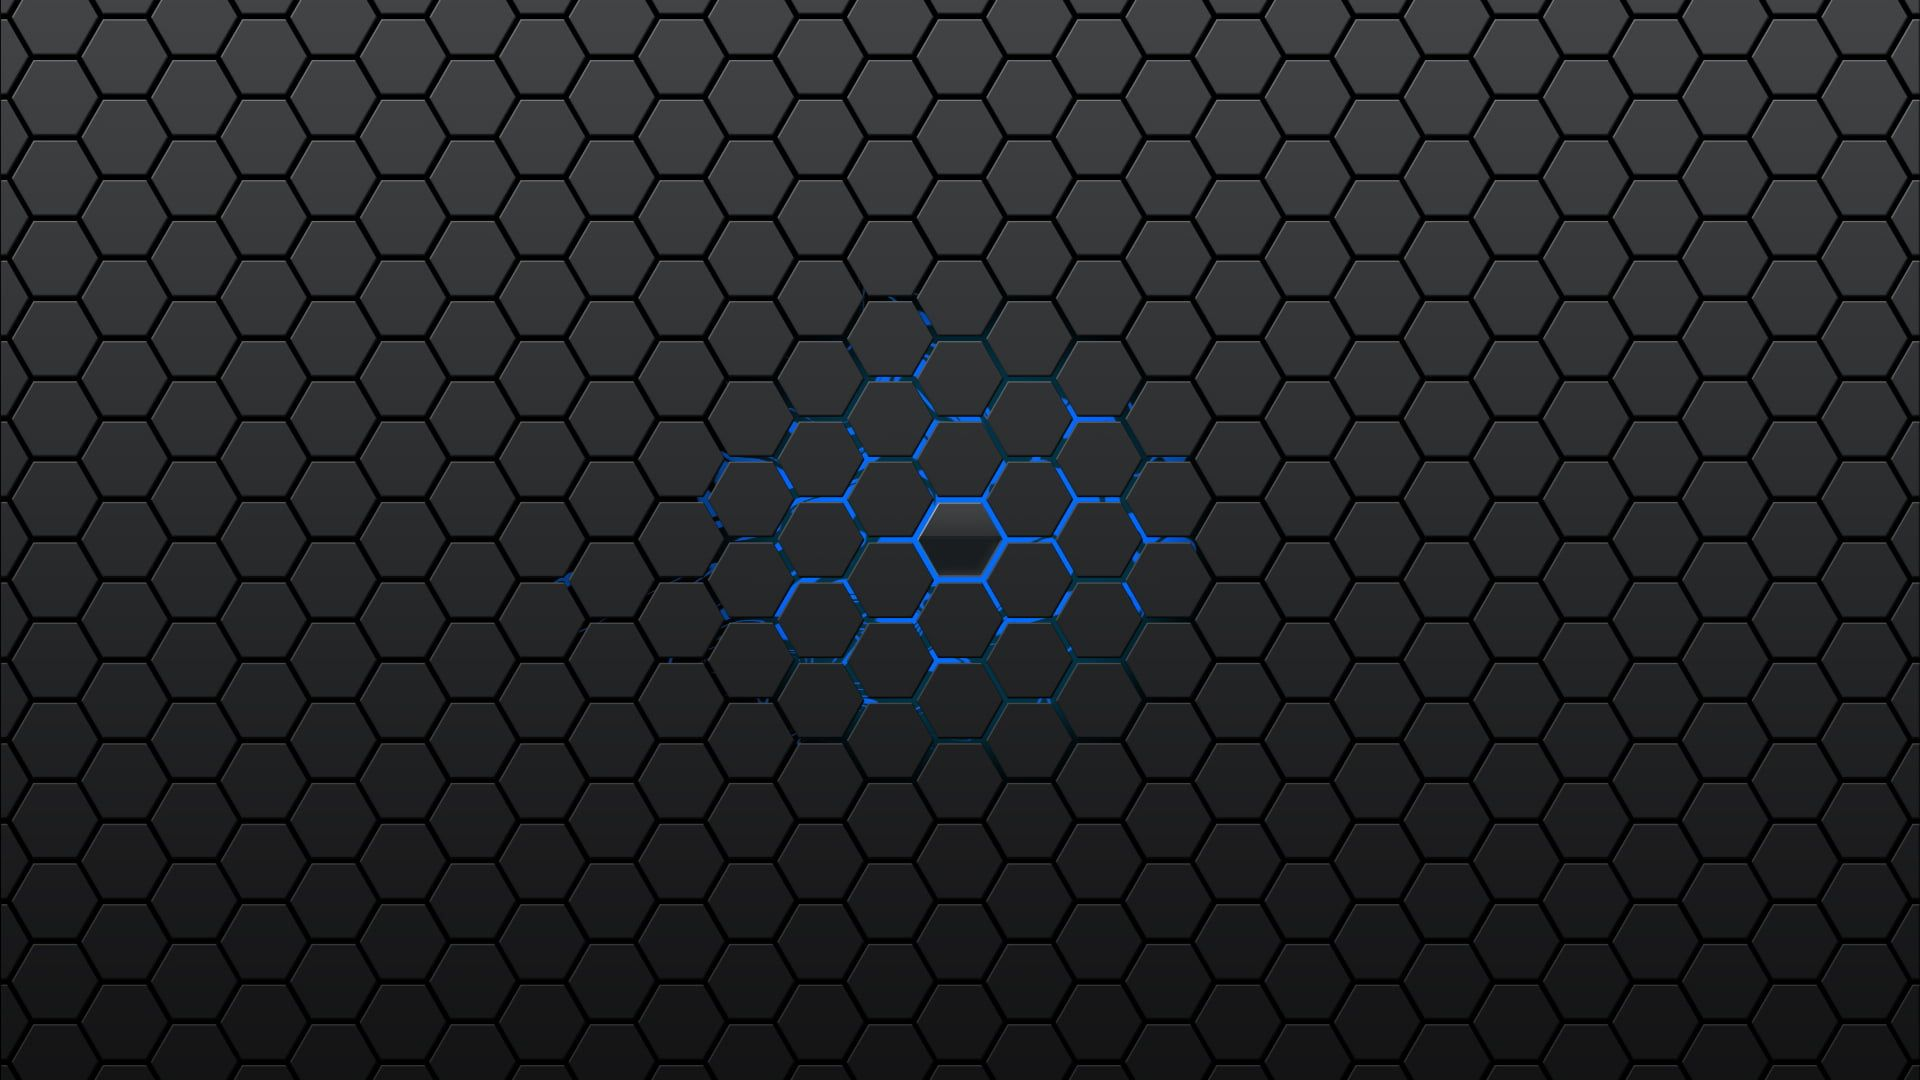 Black And Blue Abstract Wallpaper Gray And Blue Honeycomb Graphic Honeycombs Abstract Minimalism Sim Abstract Wallpaper Hexagon Wallpaper Samsung Wallpaper